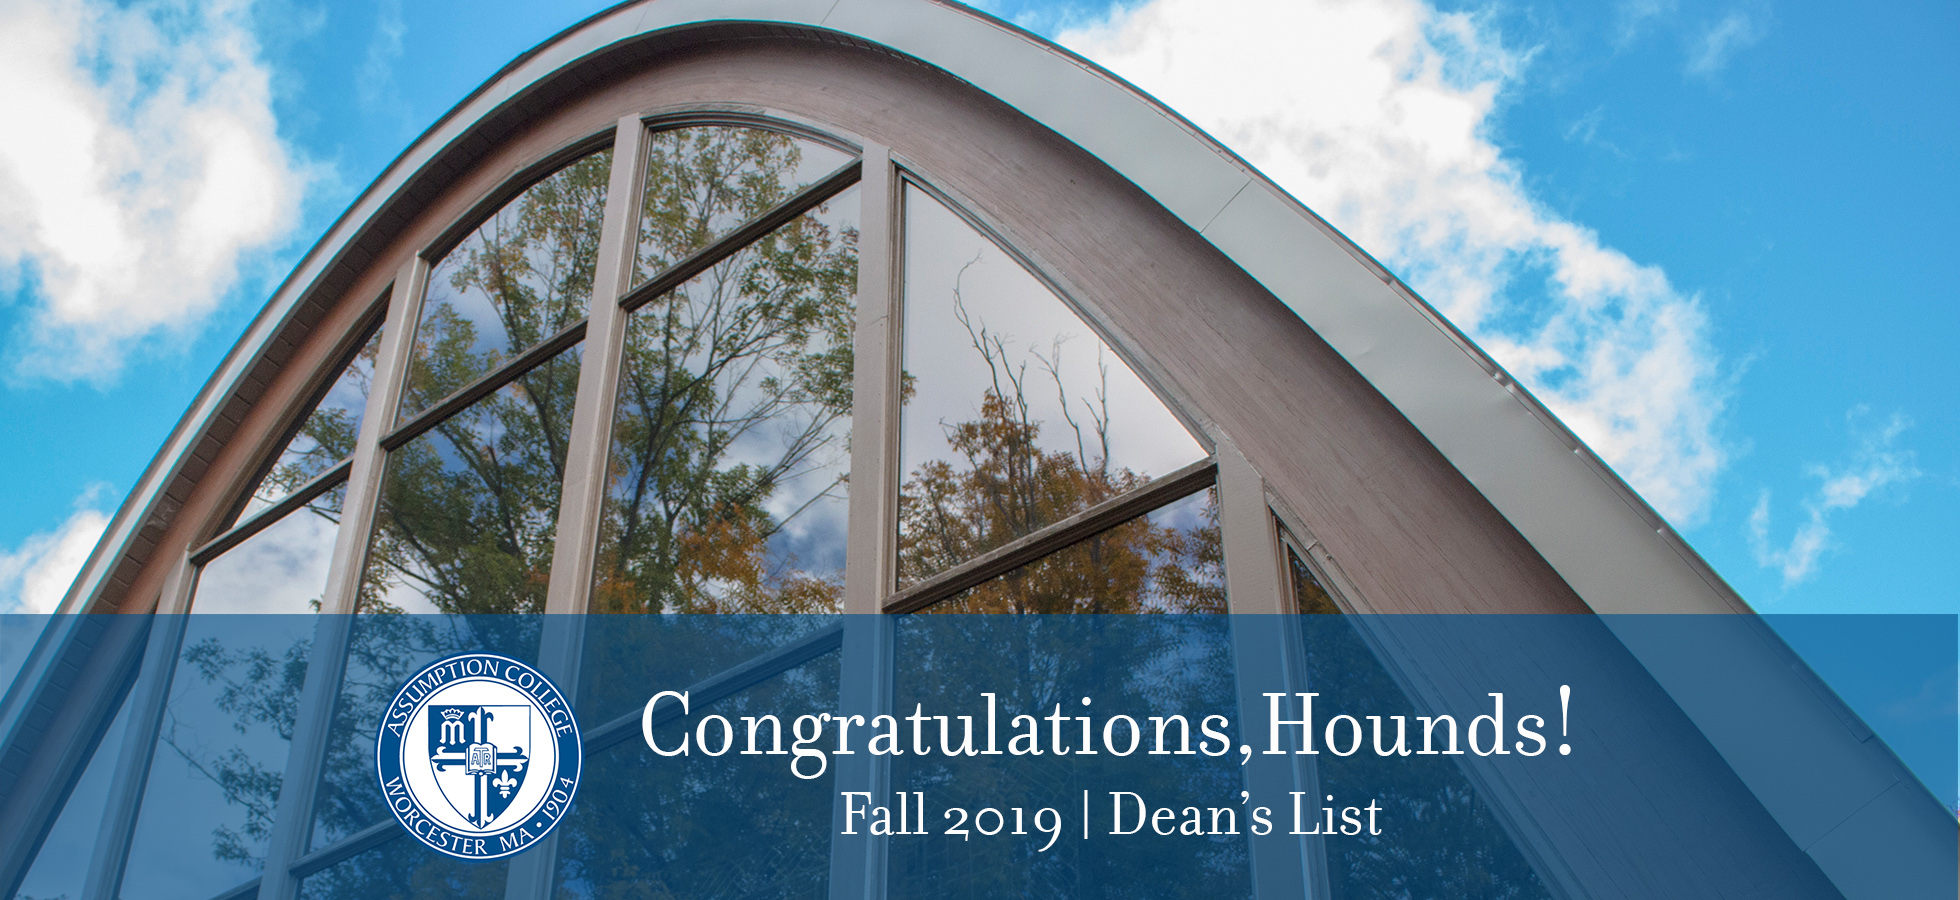 The Chapel of the Holy Spirit at Assumption College that includes the words Congratulations, Hounds! Fall 2019 Dean's List